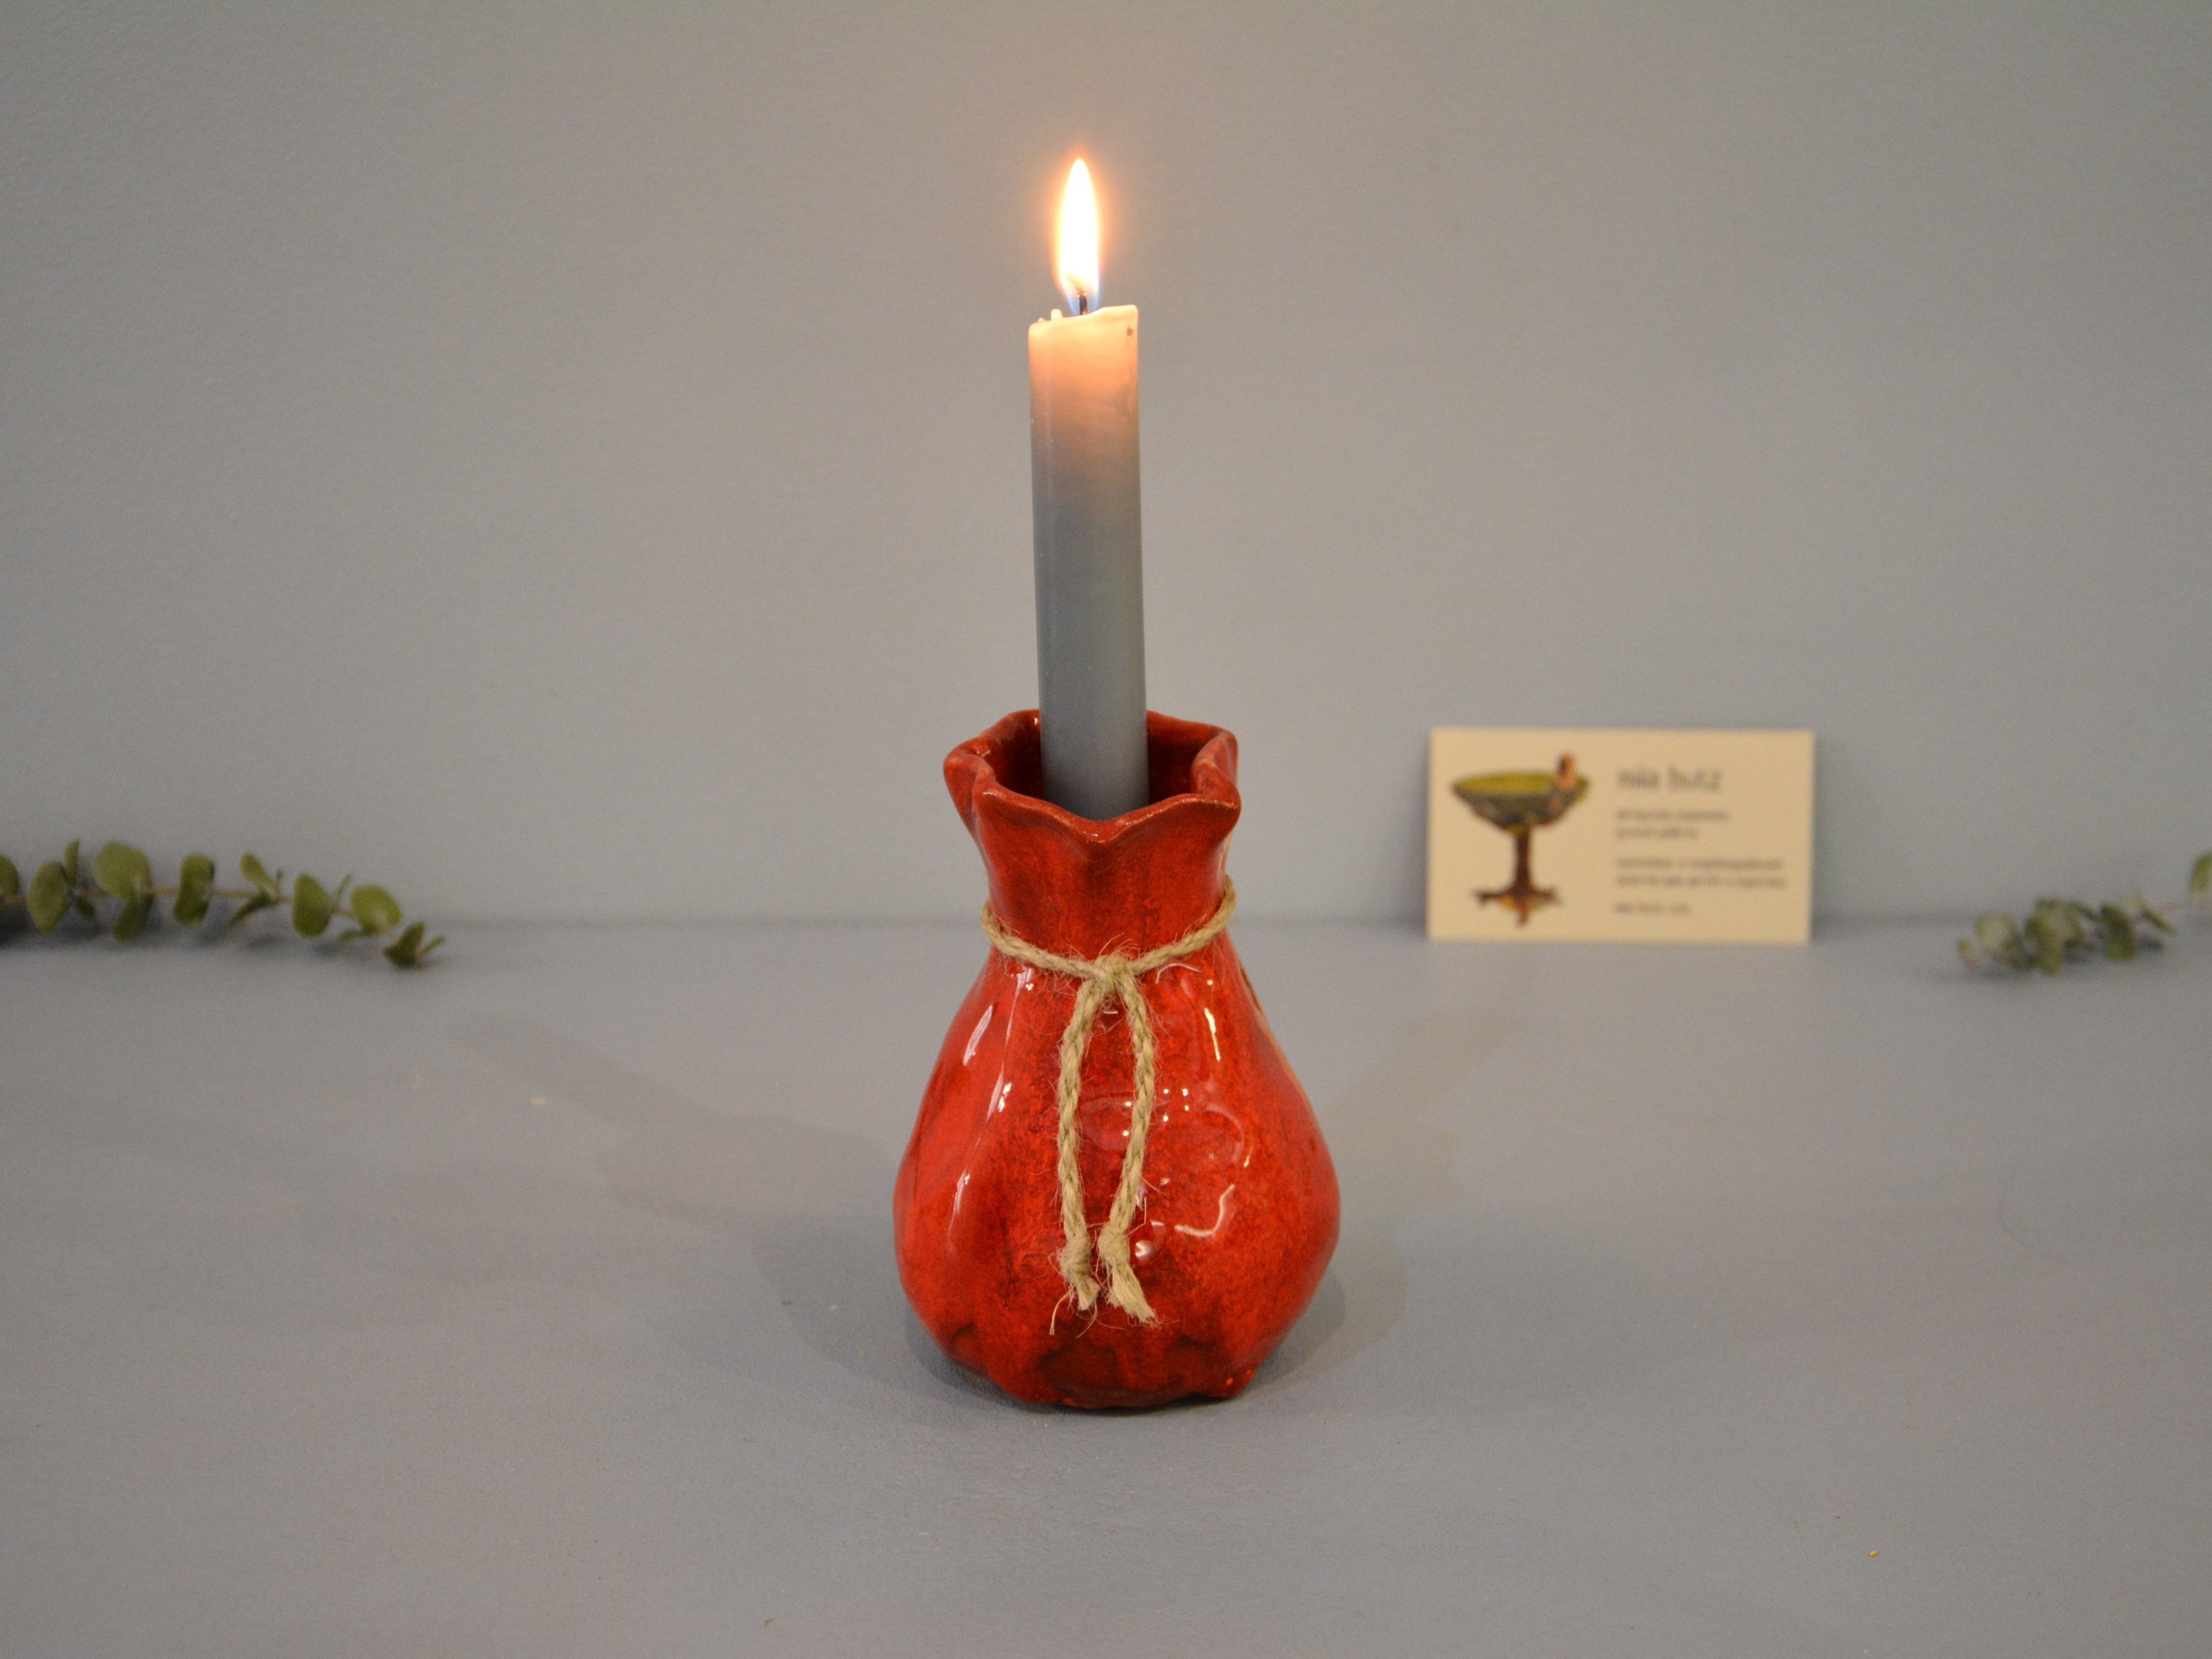 Candle vase «Red Bagful», height - 12 cm, color - red. Photo 1422-3840-2880.